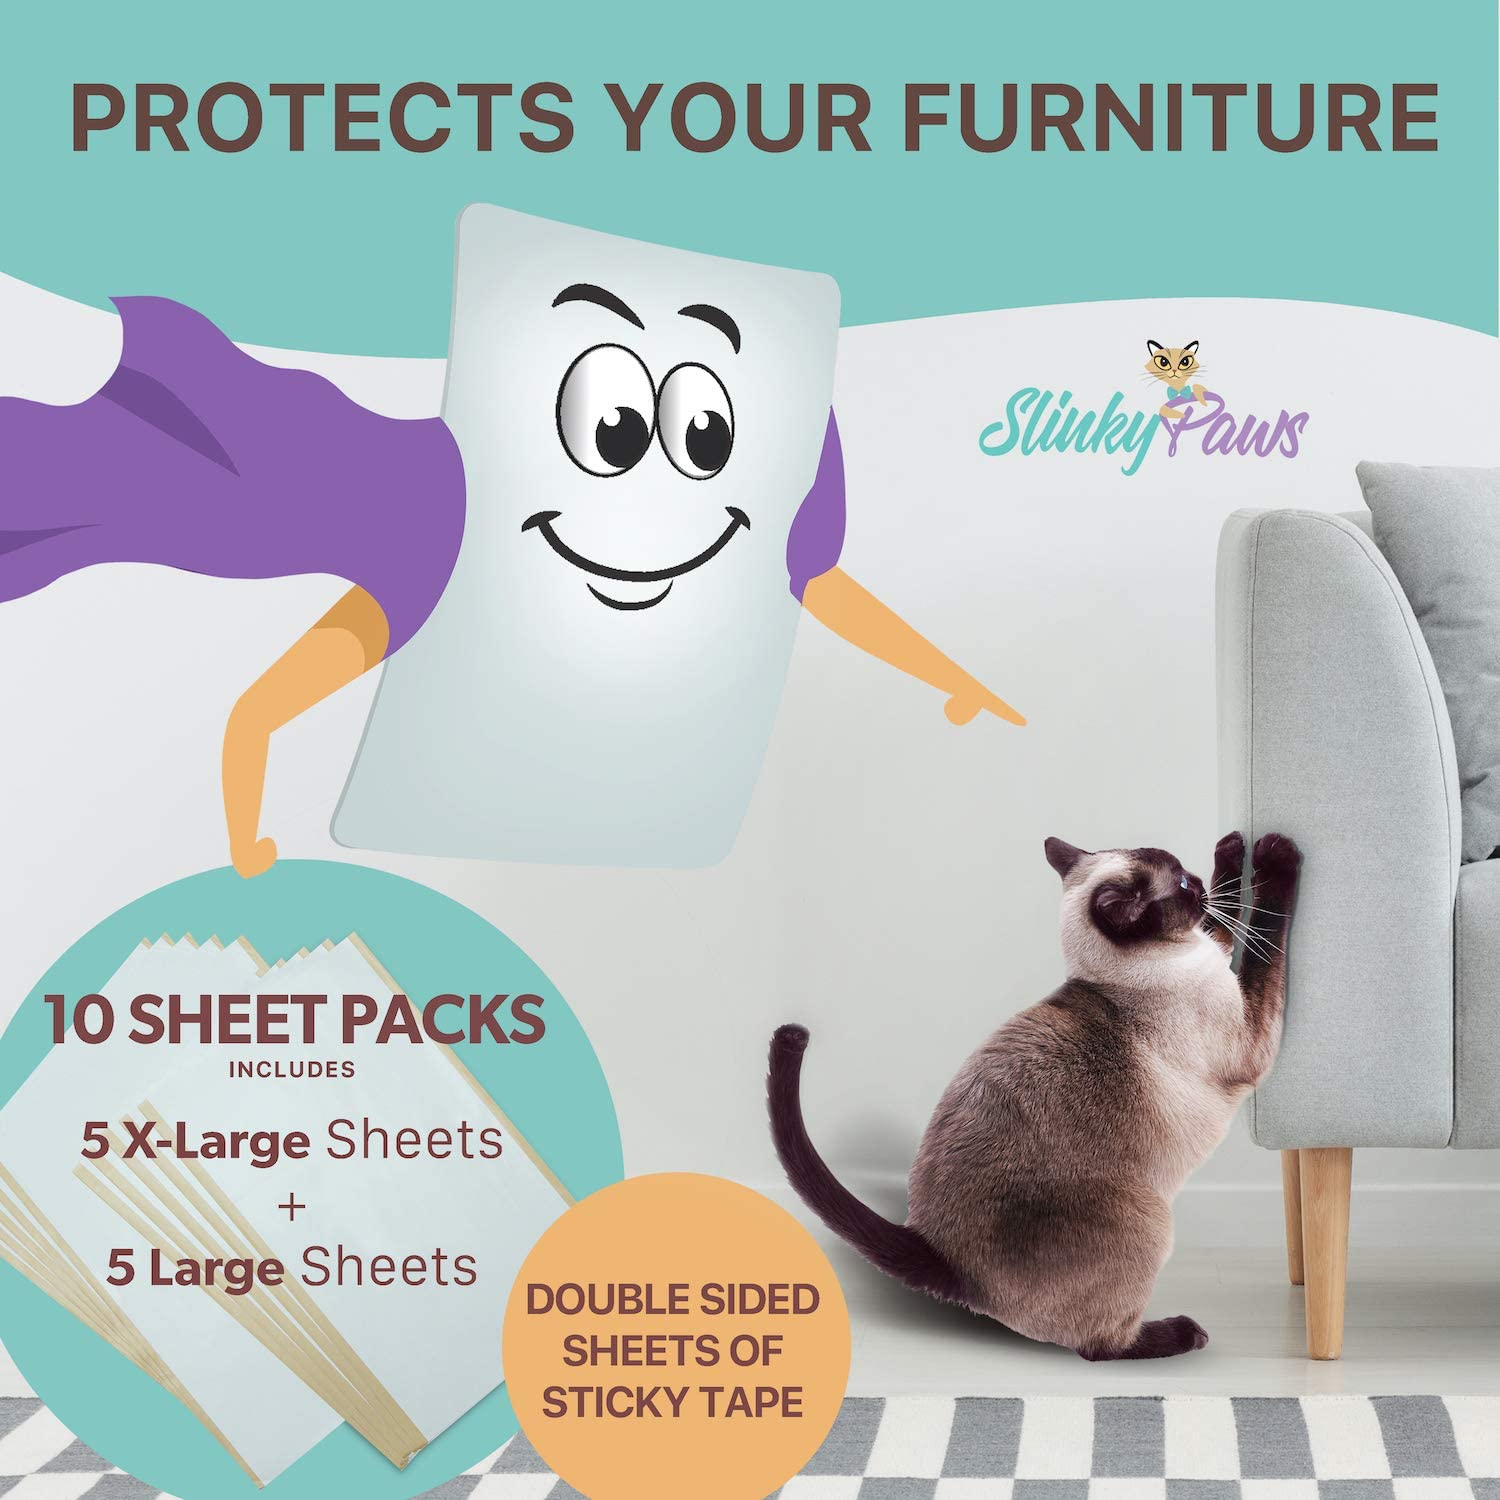 Slinky Paws Cat Scratch Furniture Protector and Scratch Deterrent Tape Will Shield Your Furniture from cat Claws While Training Your Feline to use Their Scratch Post